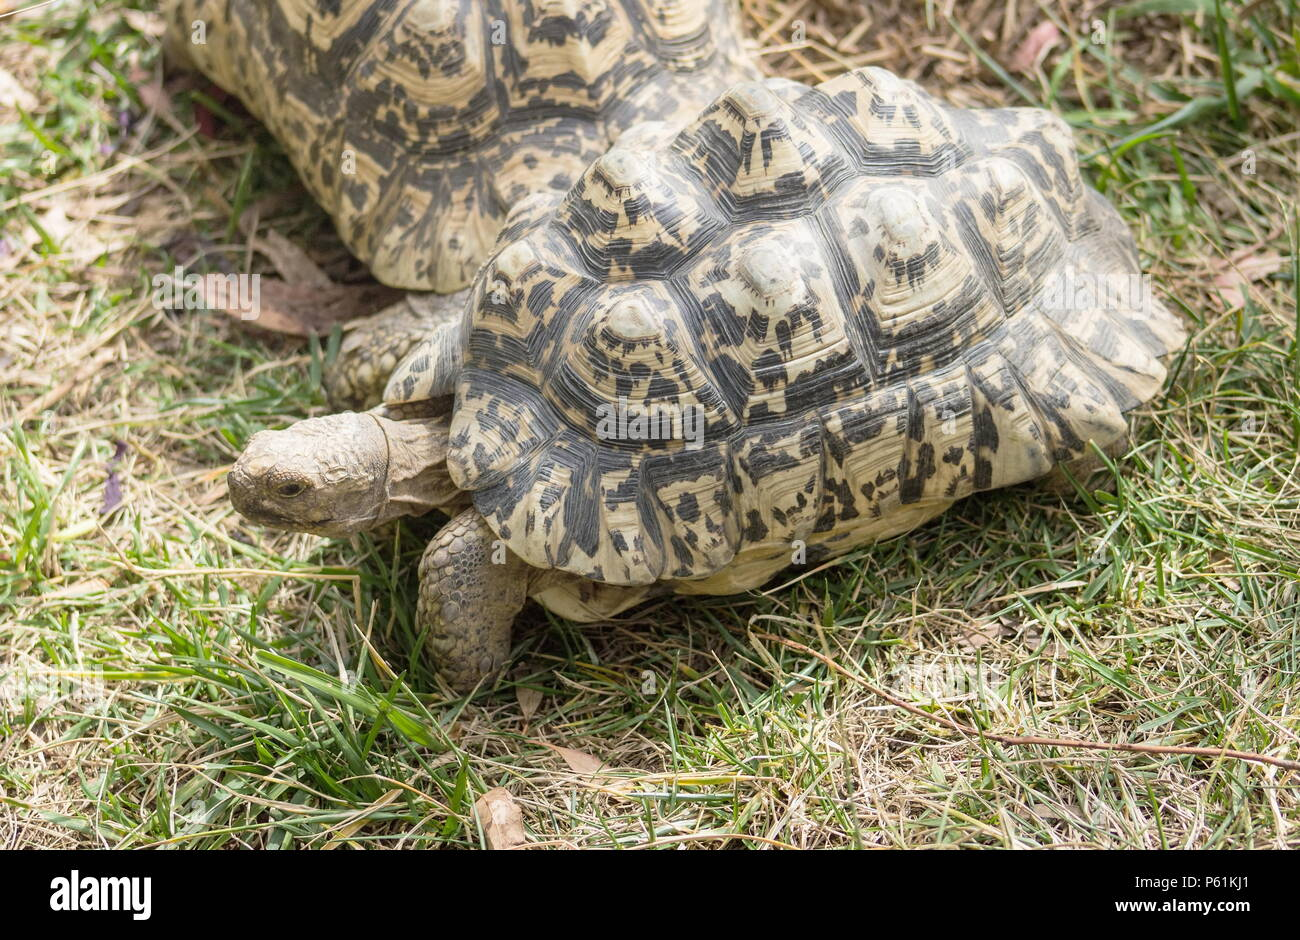 The leopard tortoise (Stigmochelys pardalis) is a large and attractively marked tortoise found in the savannas of eastern and southern Africa, from Su - Stock Image